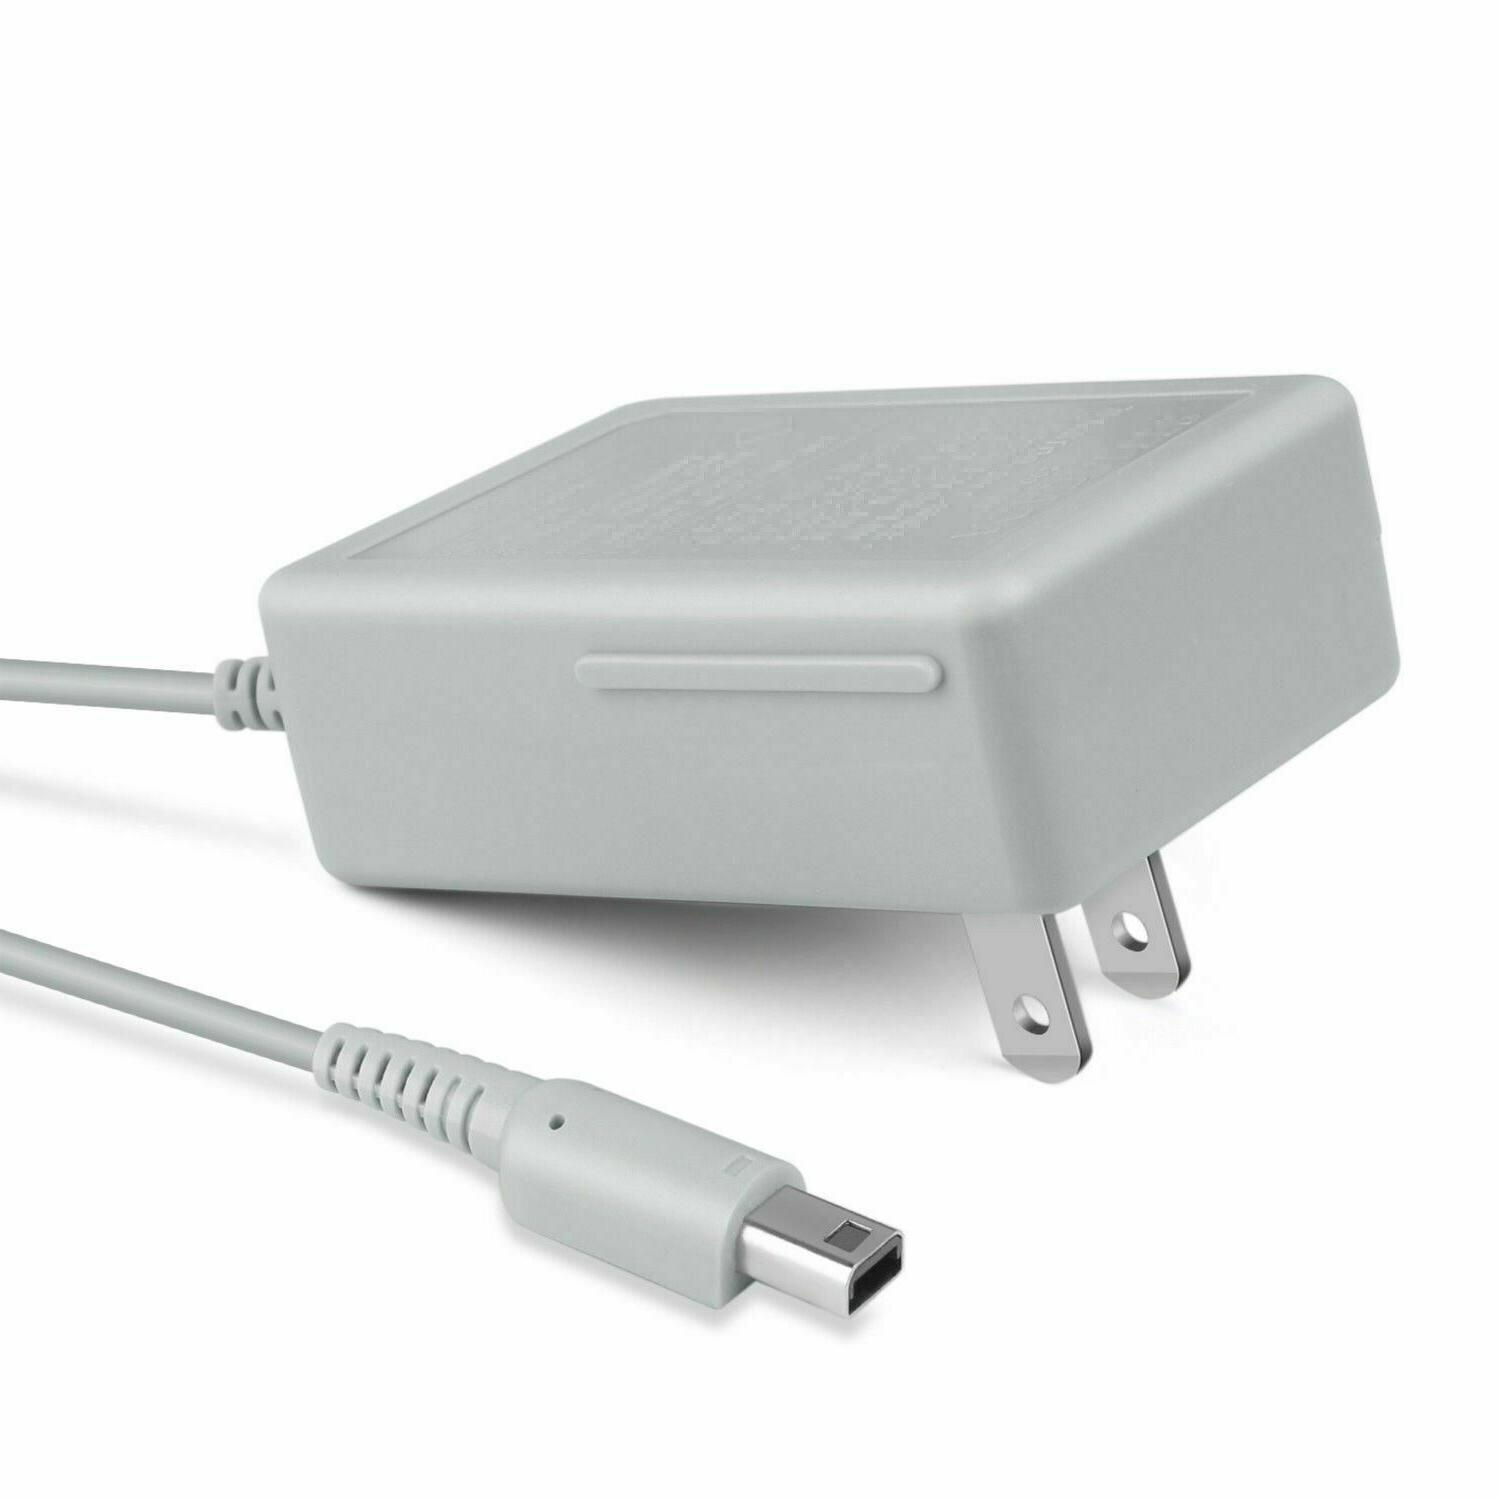 New Adapter Wall Cable for Nintendo DSi/ 3DS/ DSi System